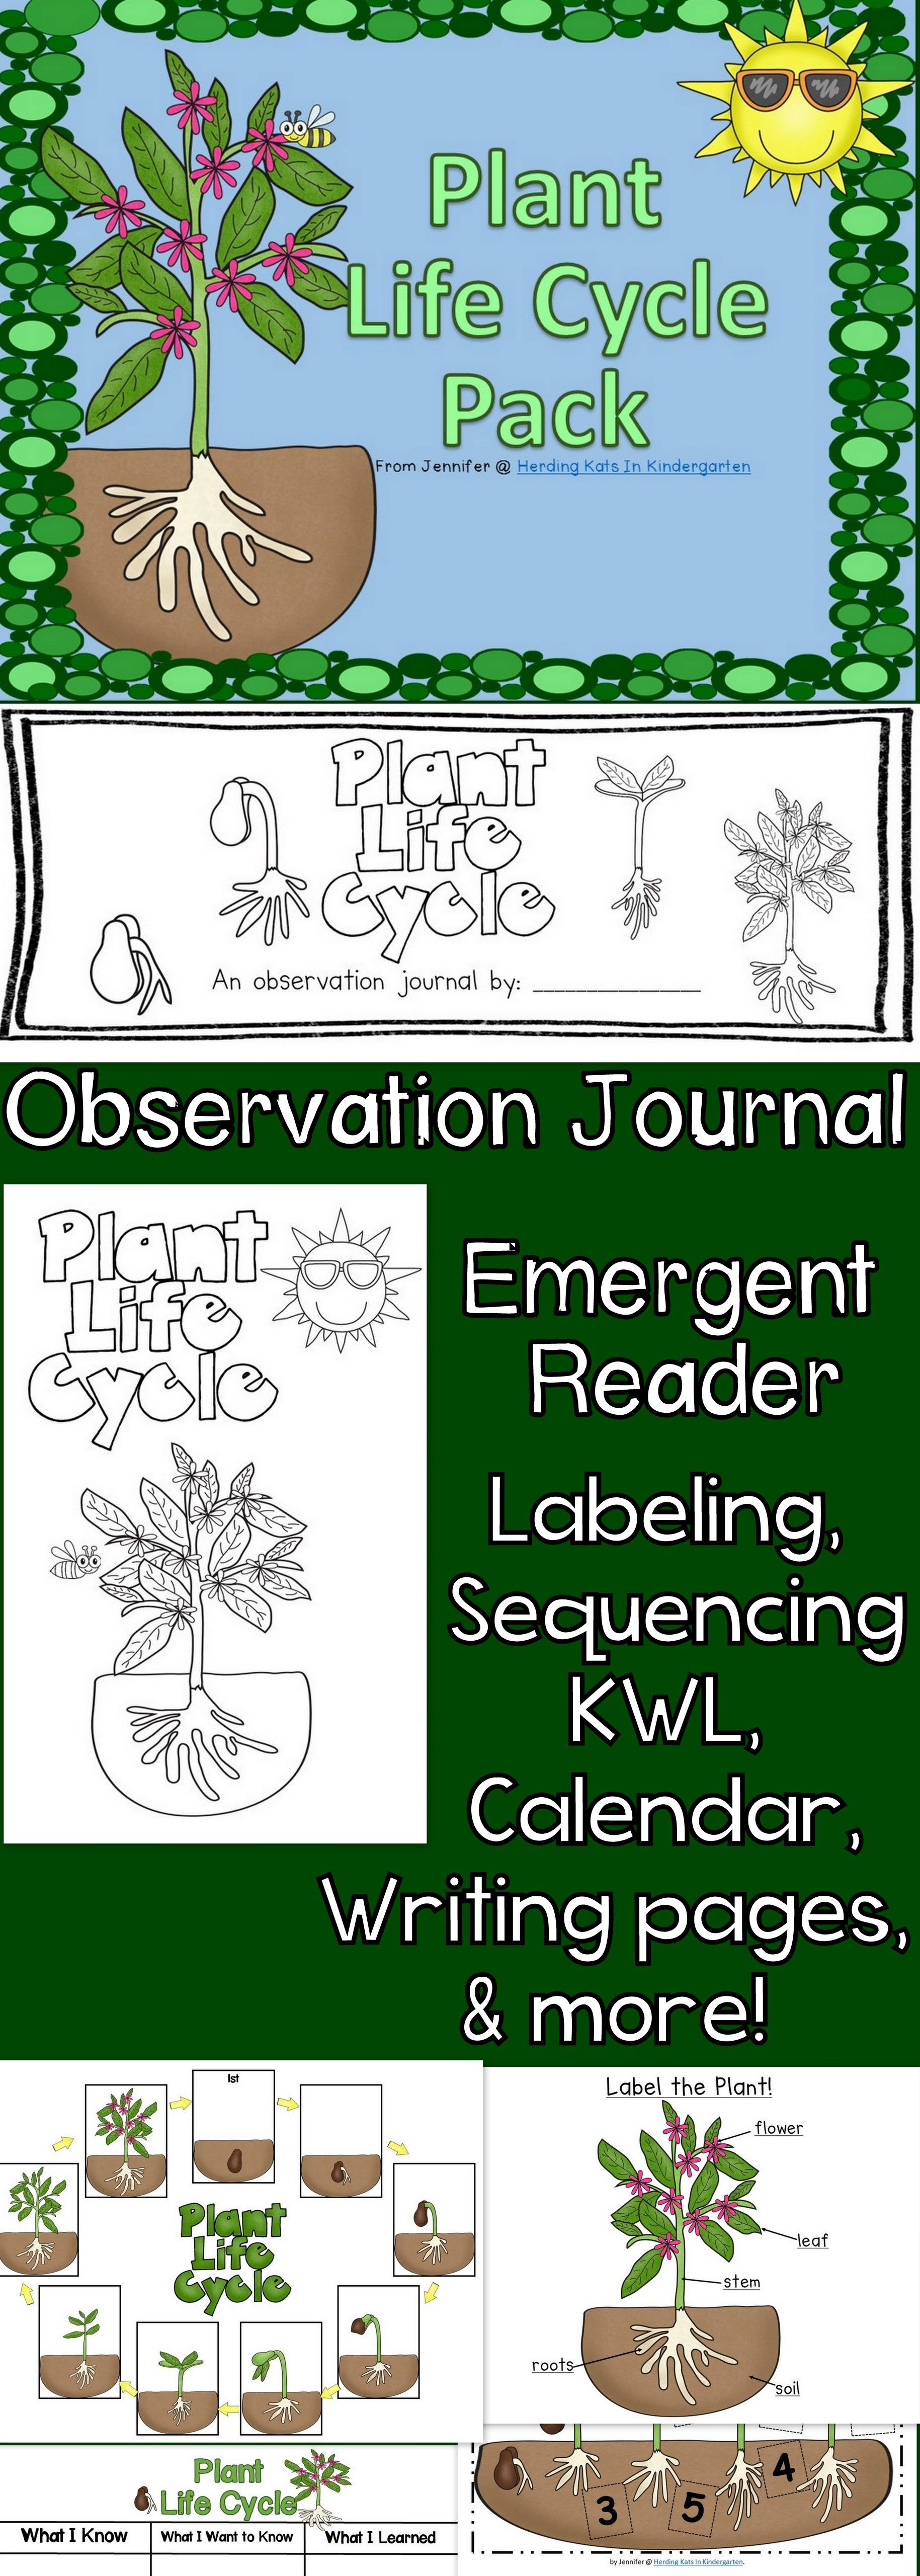 Plant Life Cycle Pack Including Observation Journal